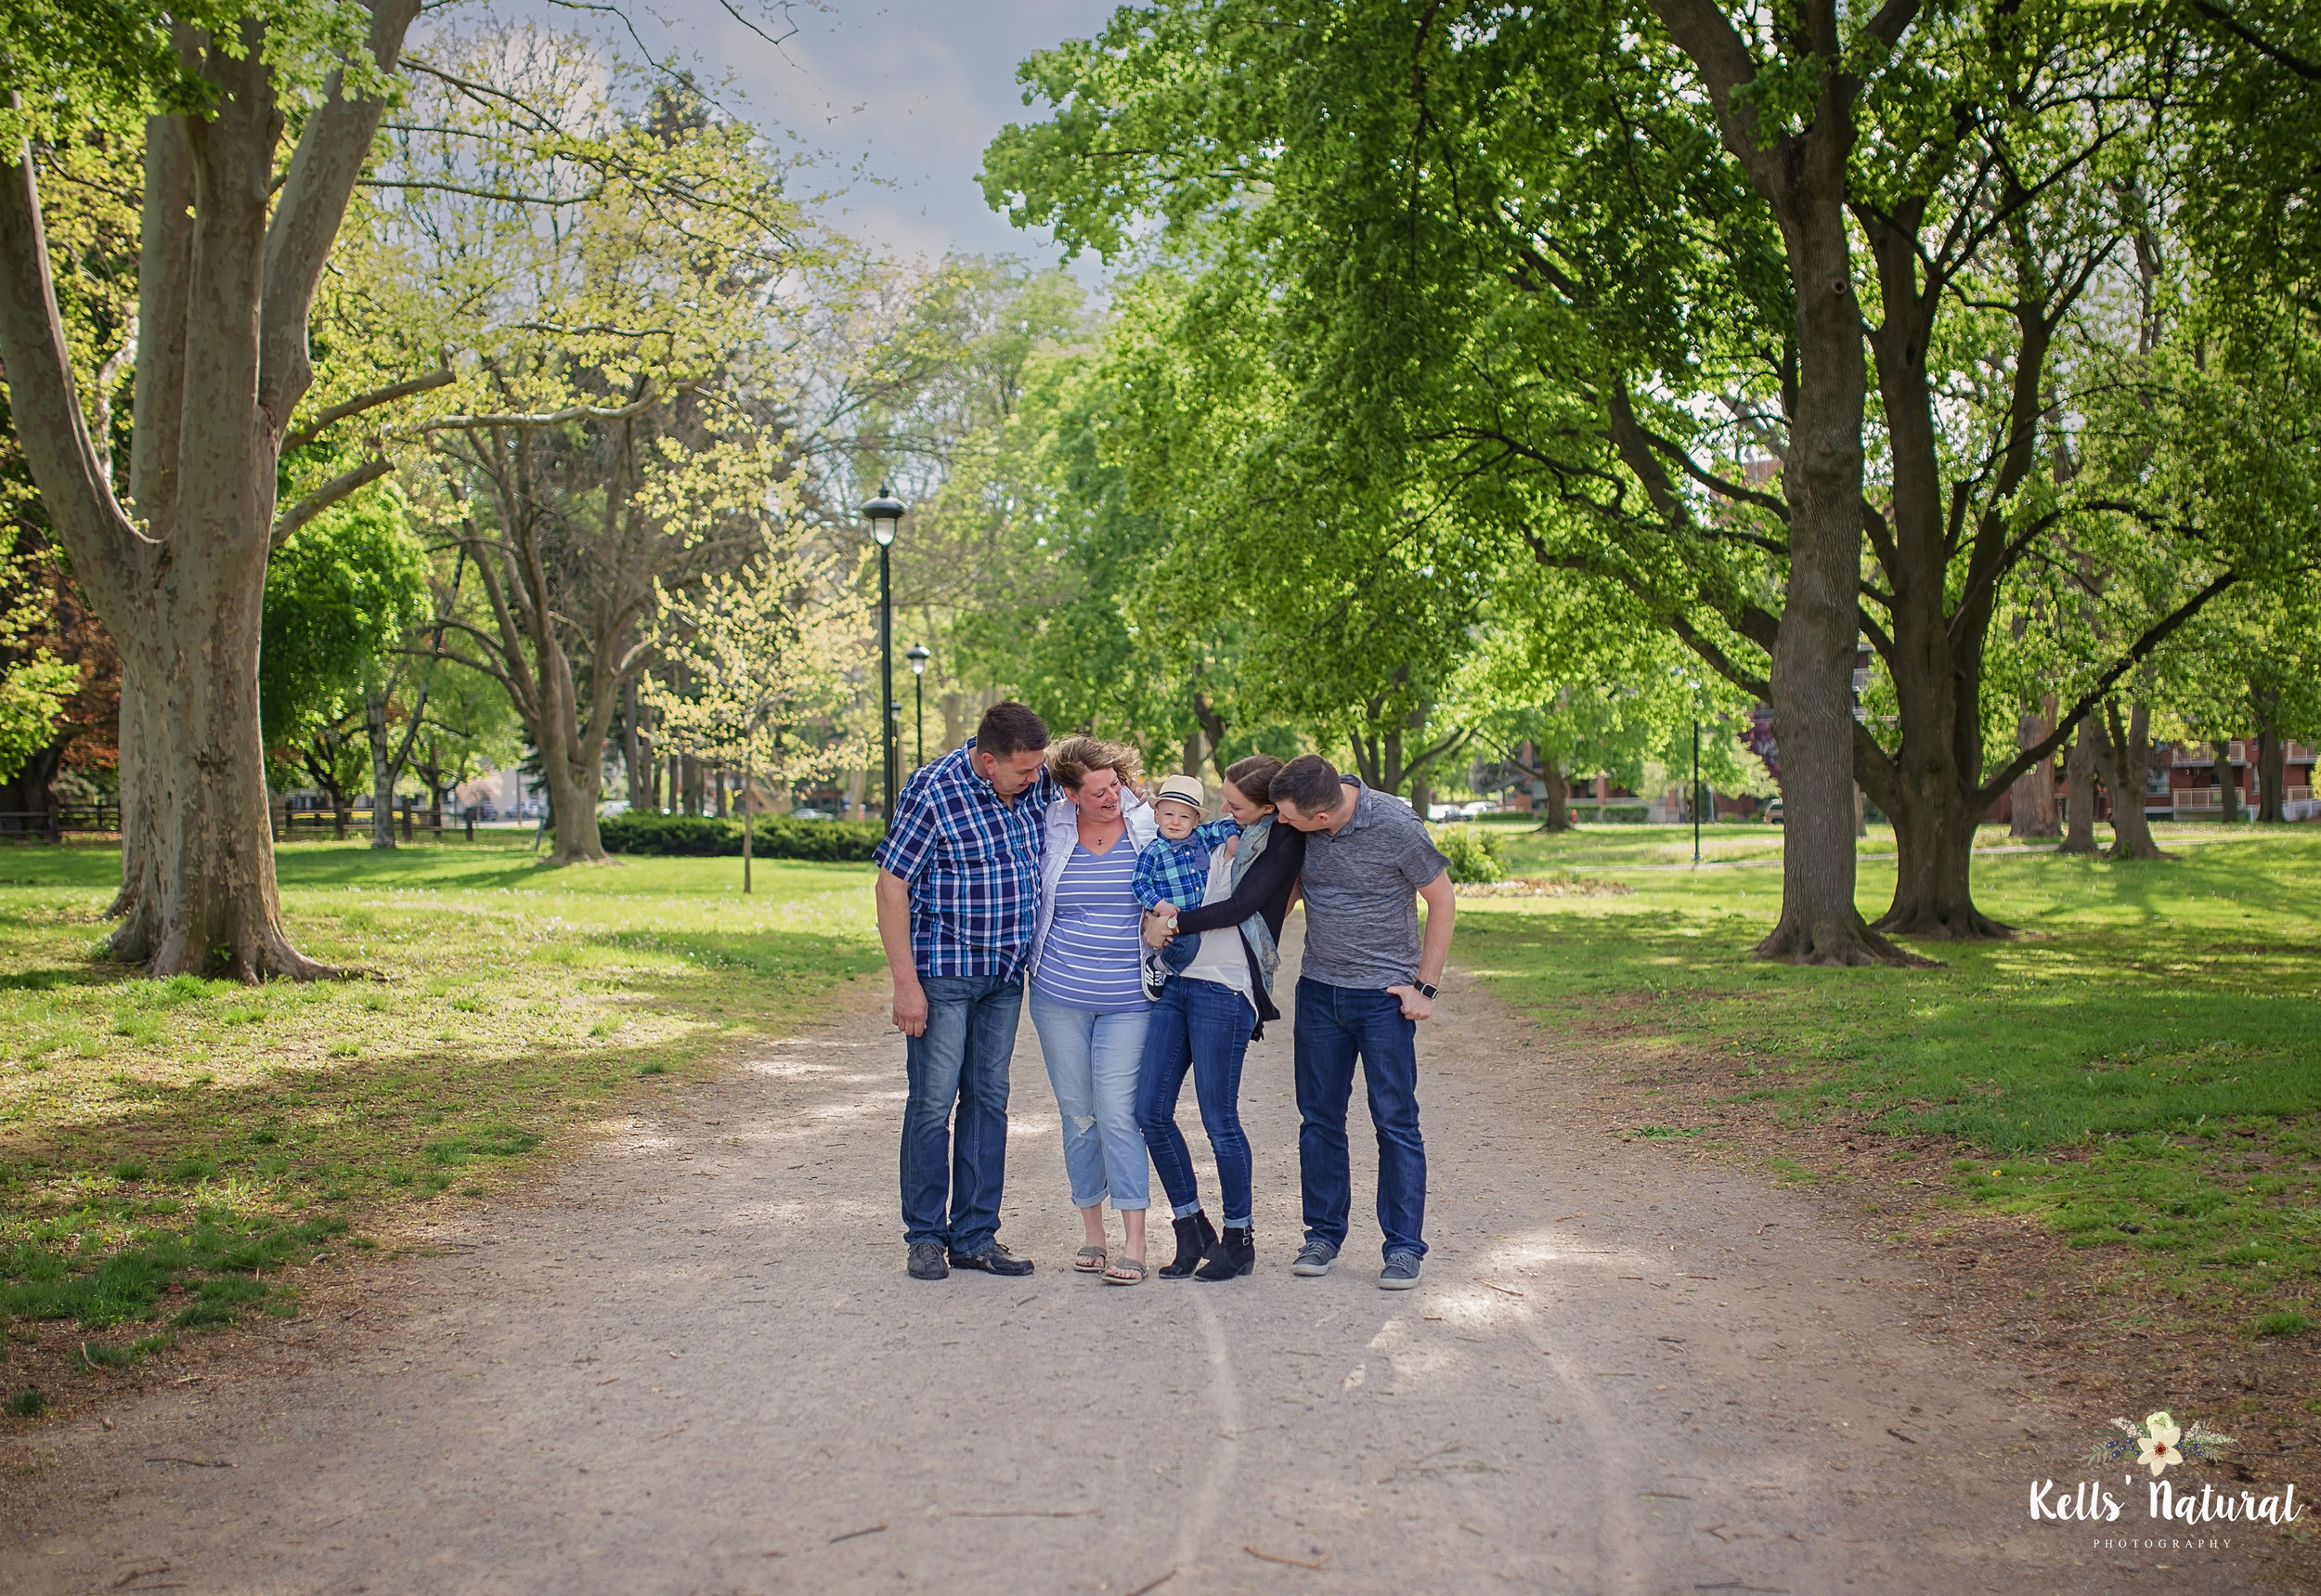 Ontario Locations for Family Photos